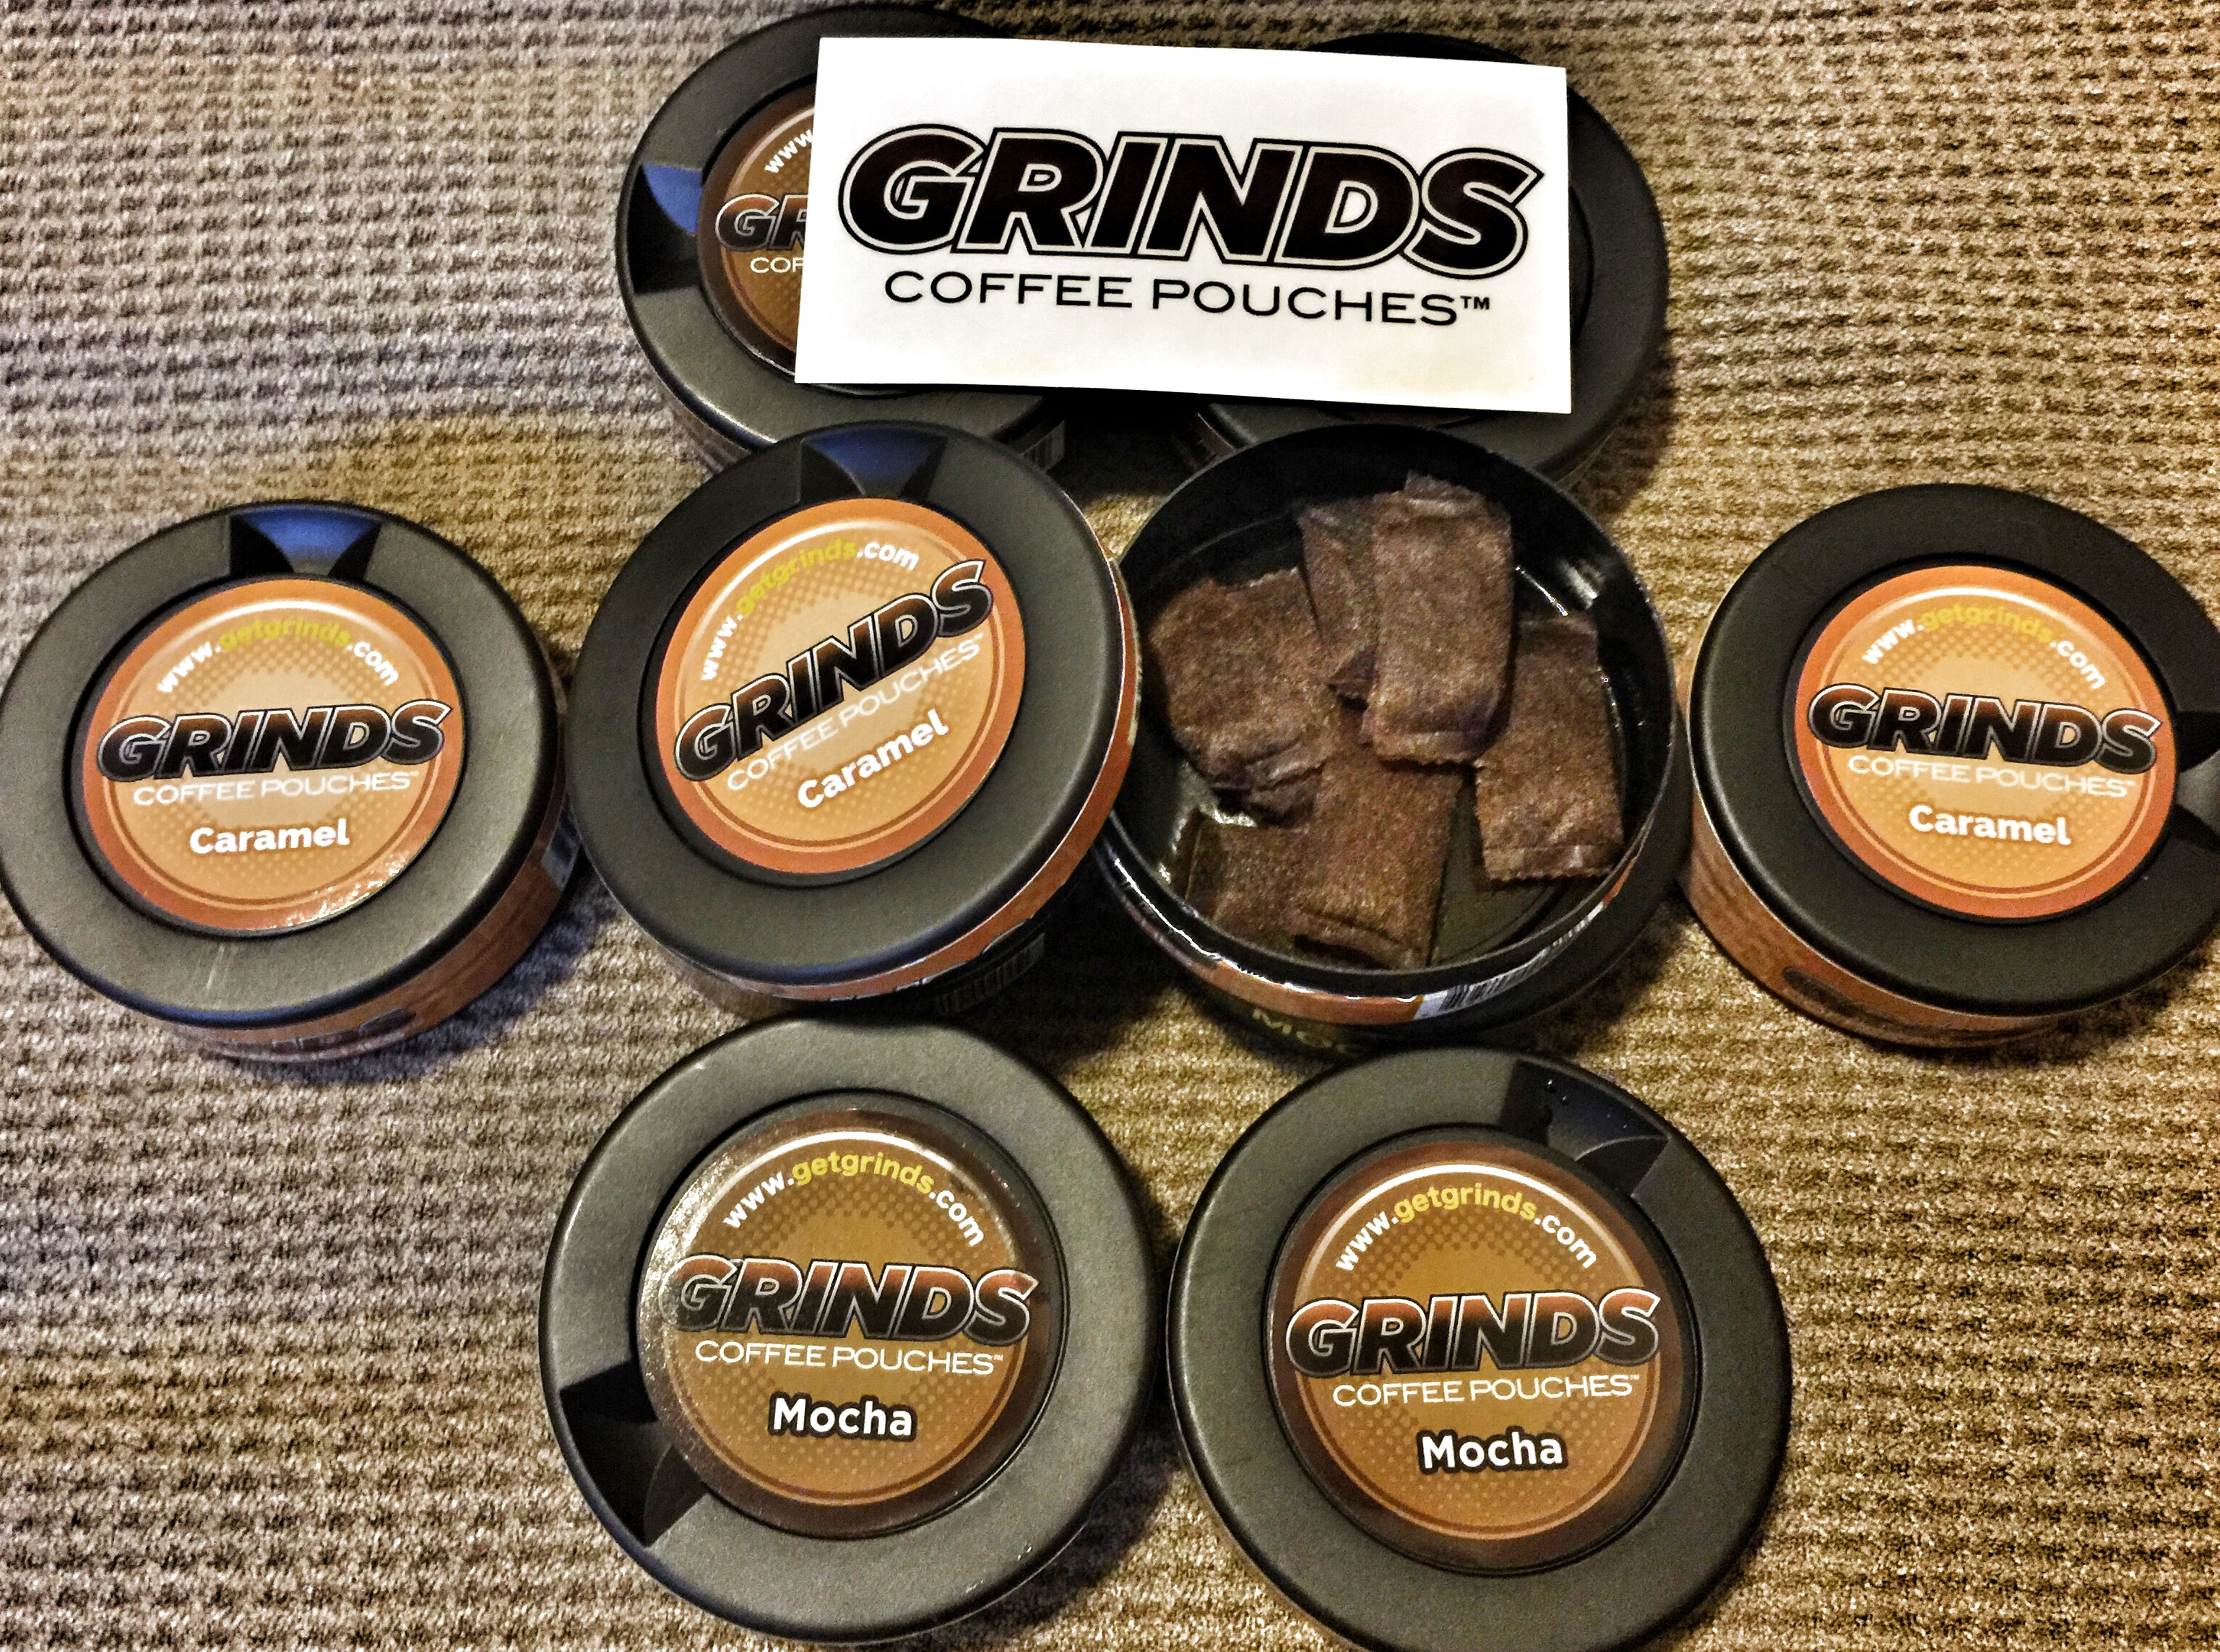 Grinds   A Healthy Alternative to Tobacco   The Loadout Room